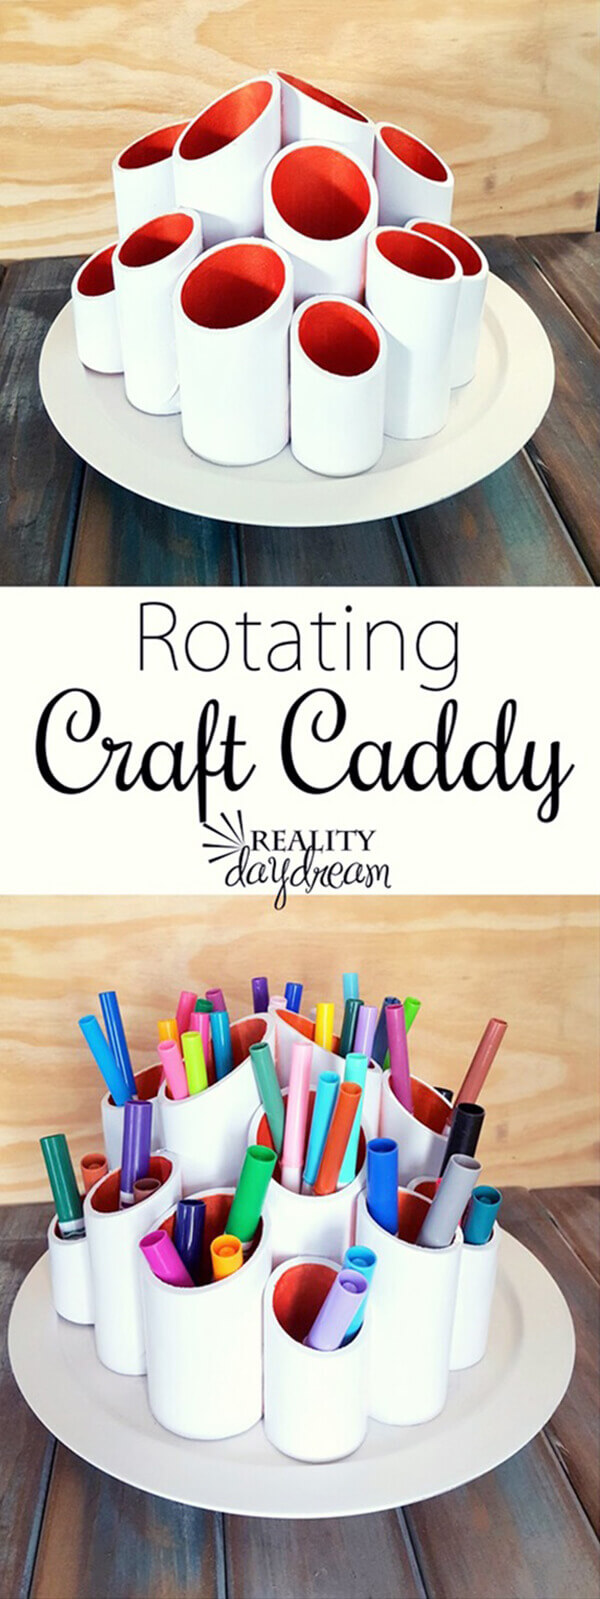 Chic and Simple Spinning Craft Caddy